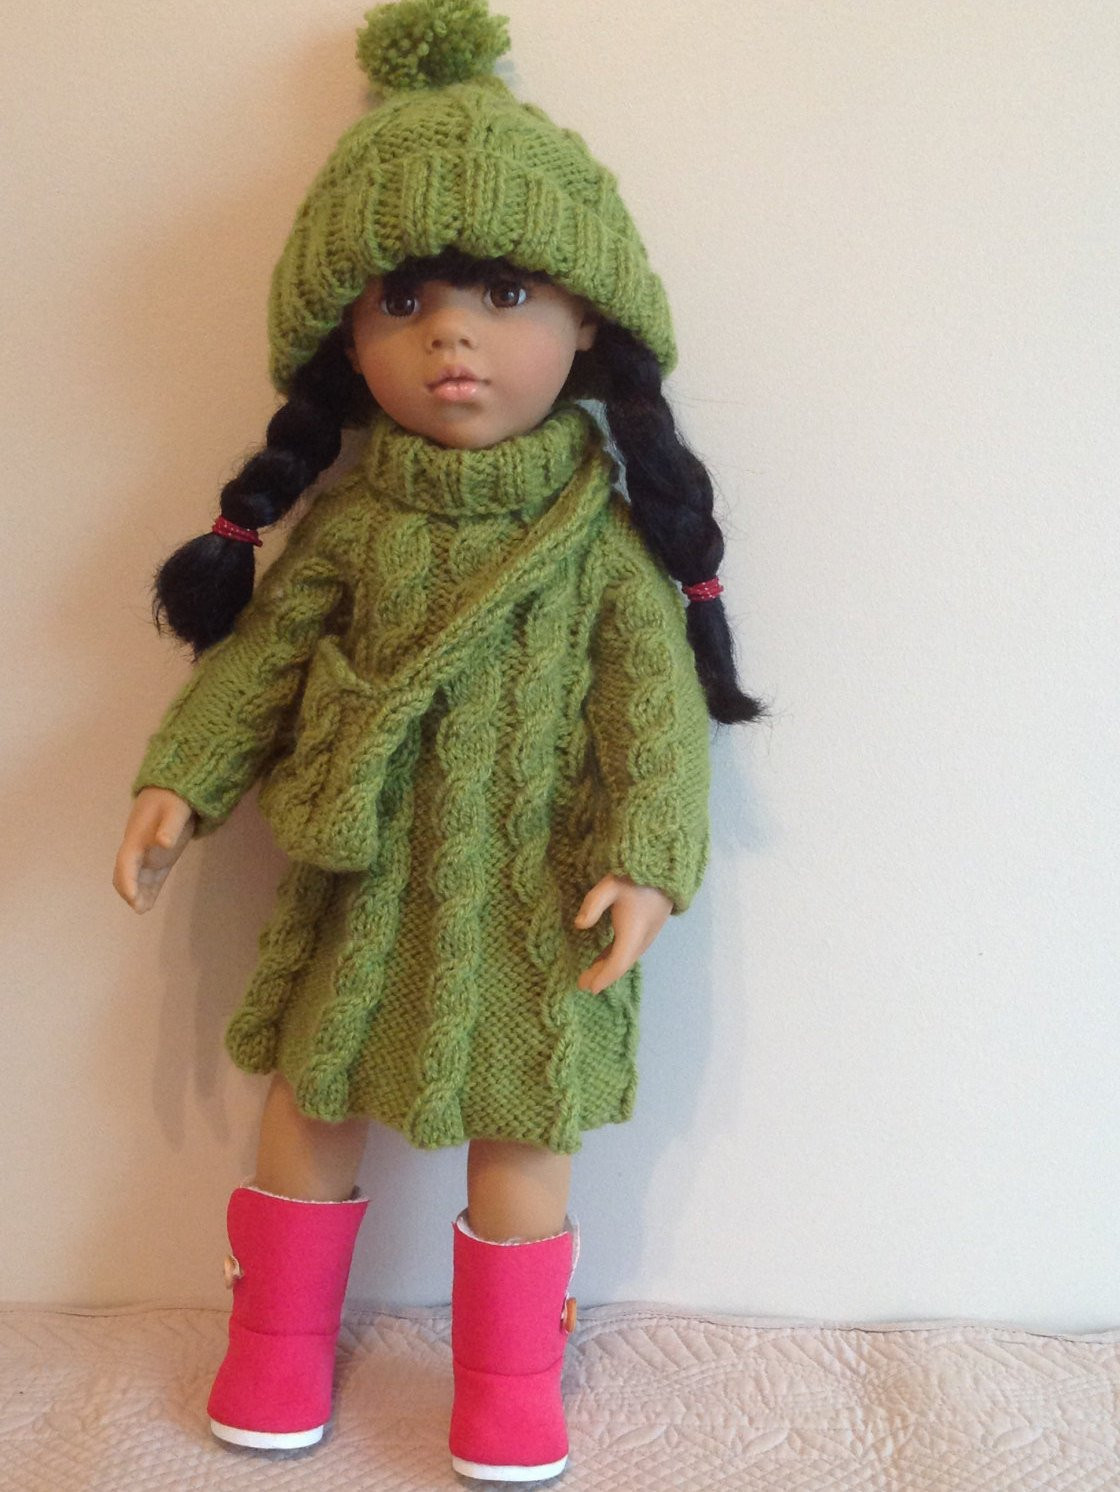 Doll Patterns New Dolls Fashion Clothes Knitting Pattern 18 Doll Will Of Doll Patterns Best Of Gingermelon Dolls My Felt Doll Knitted Outfit Patterns